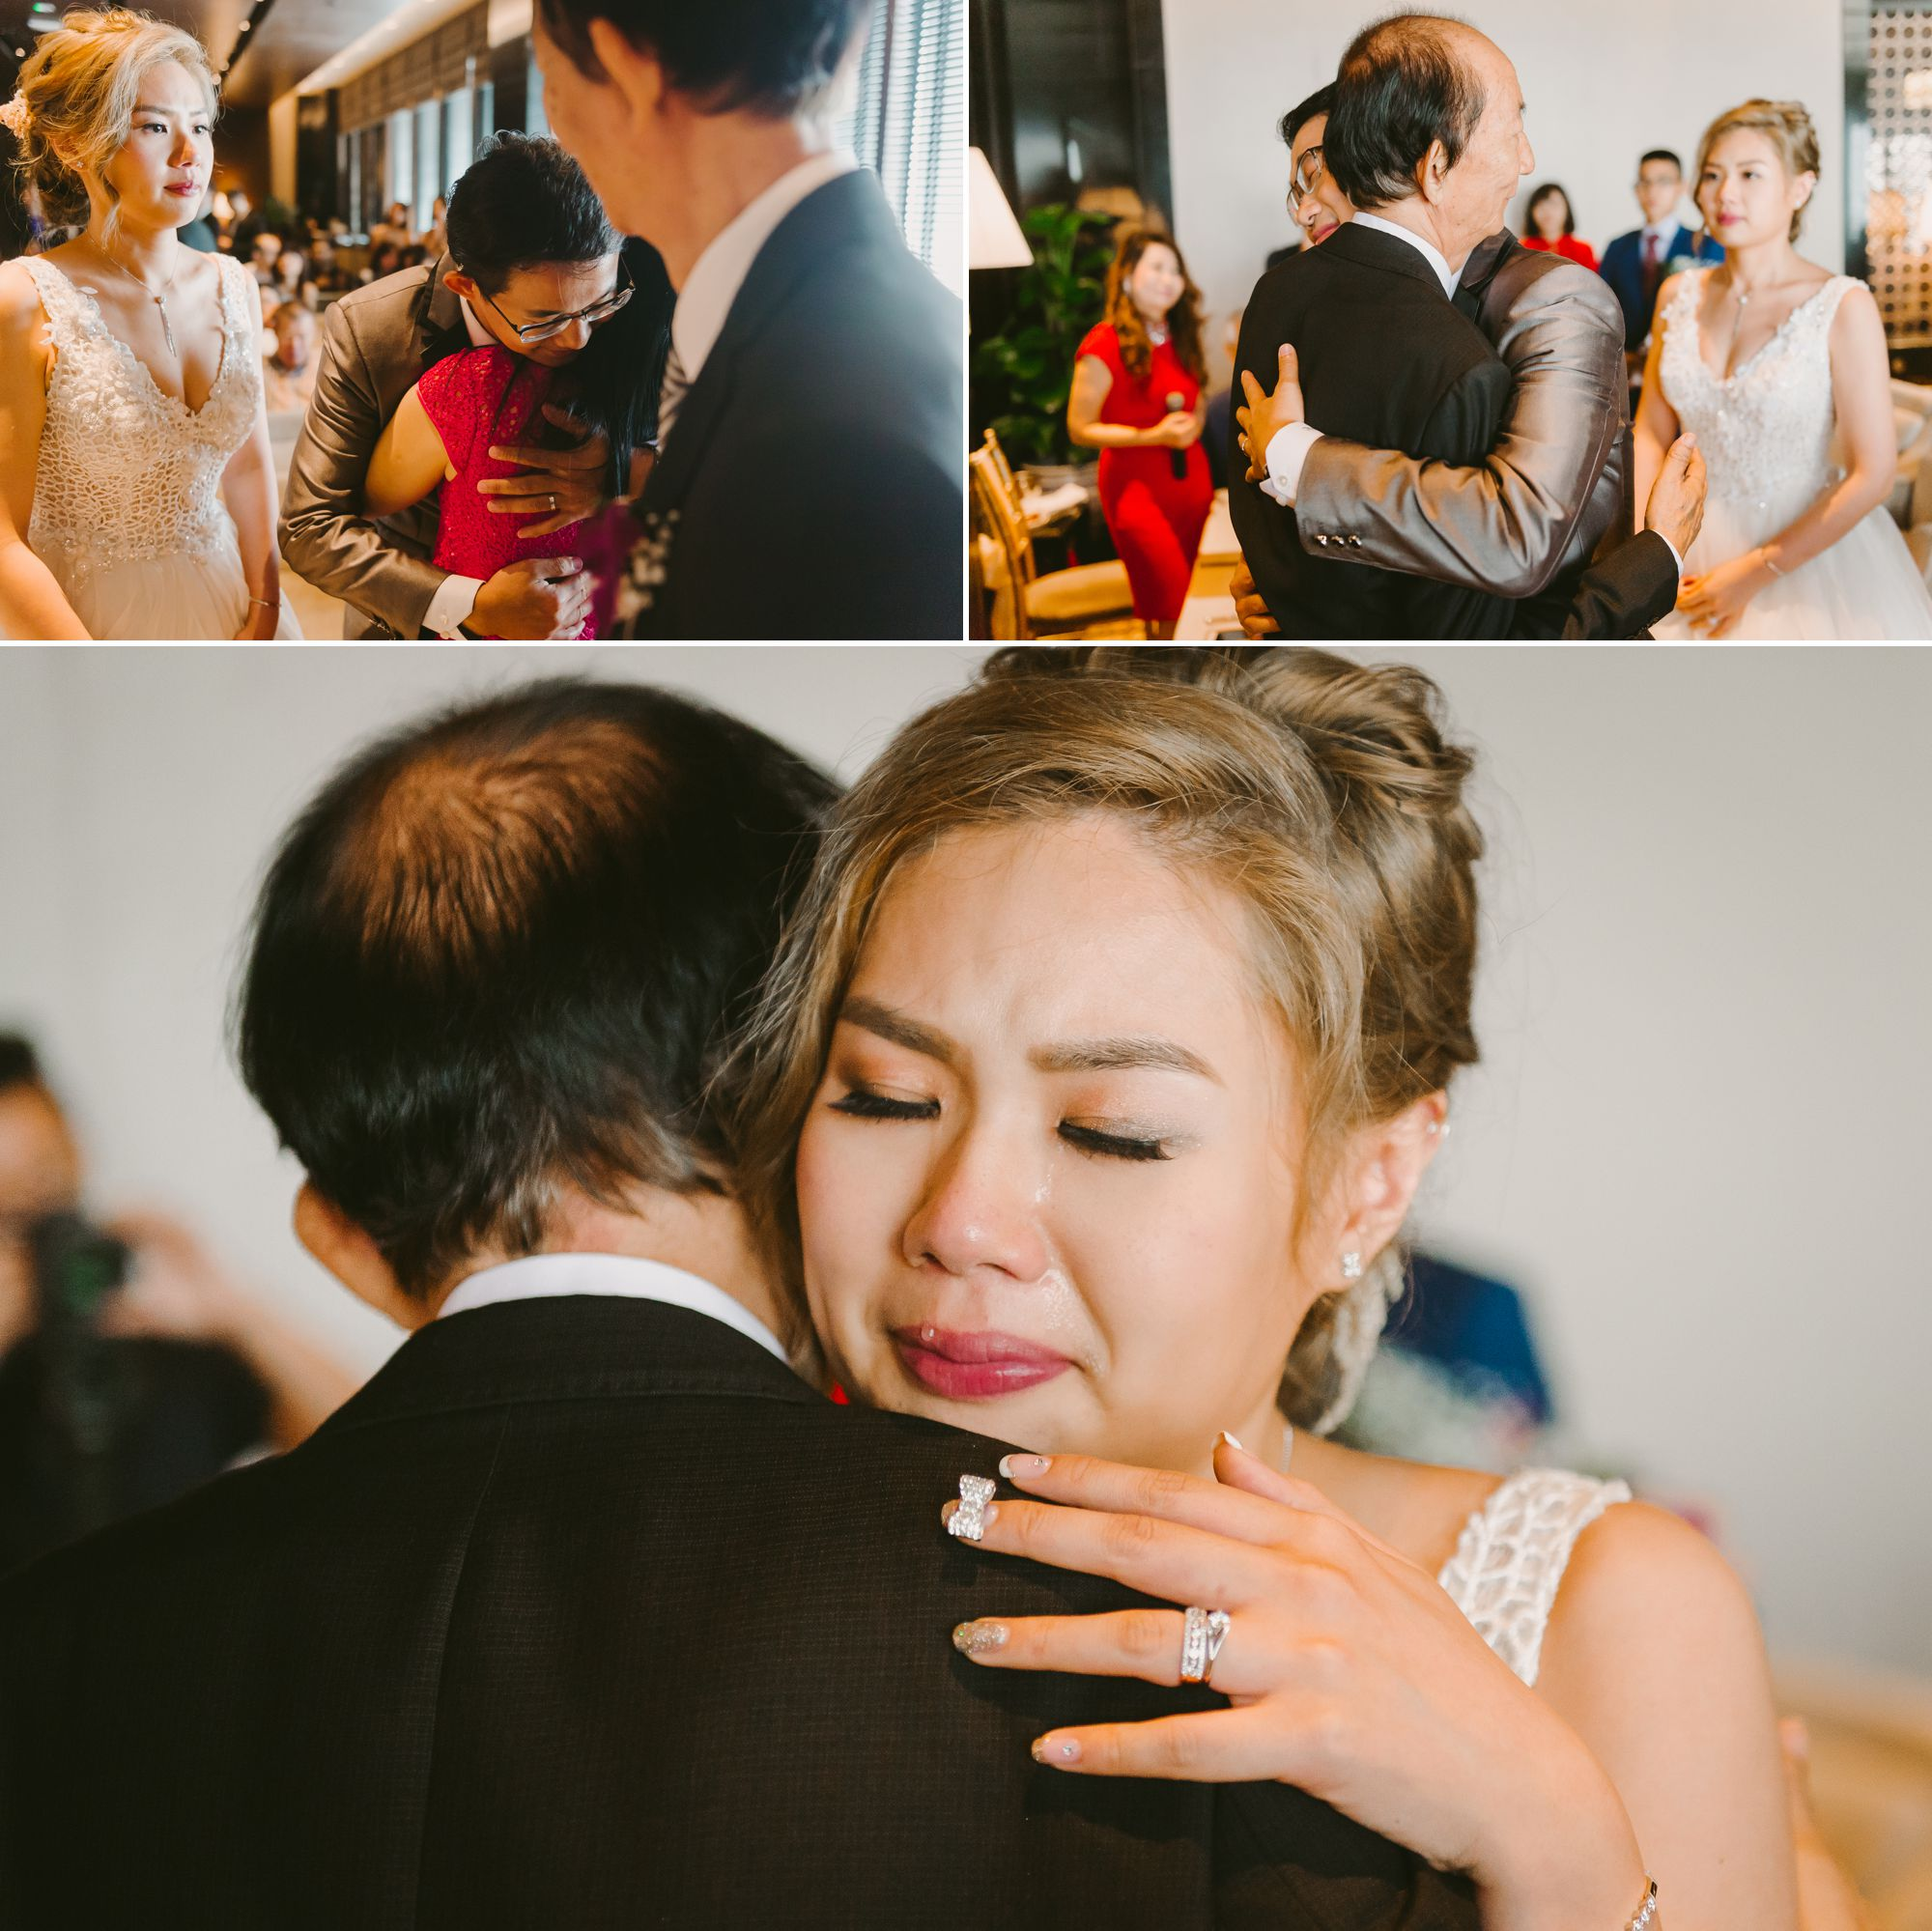 wedding_photographer_singapore 24.jpg